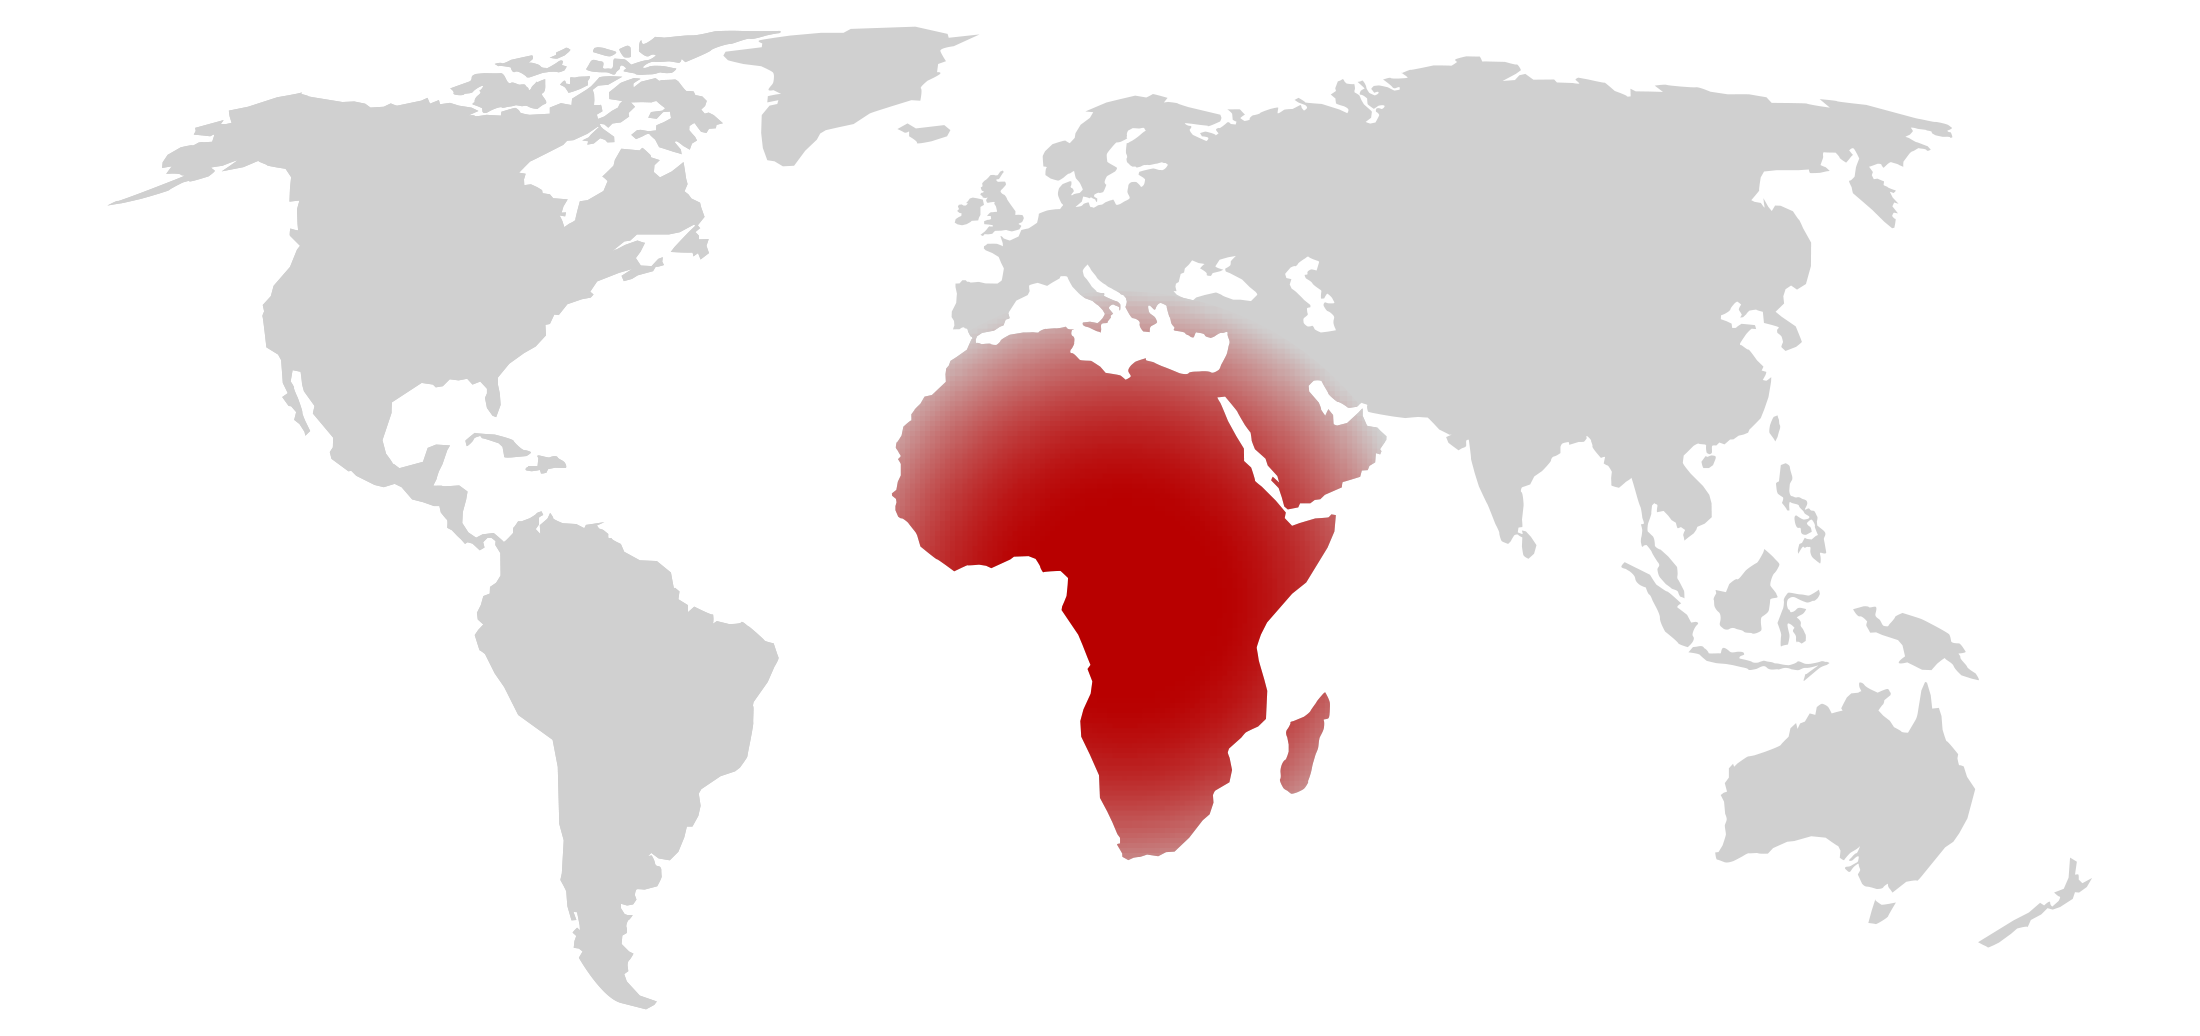 Map showing the area of Africa